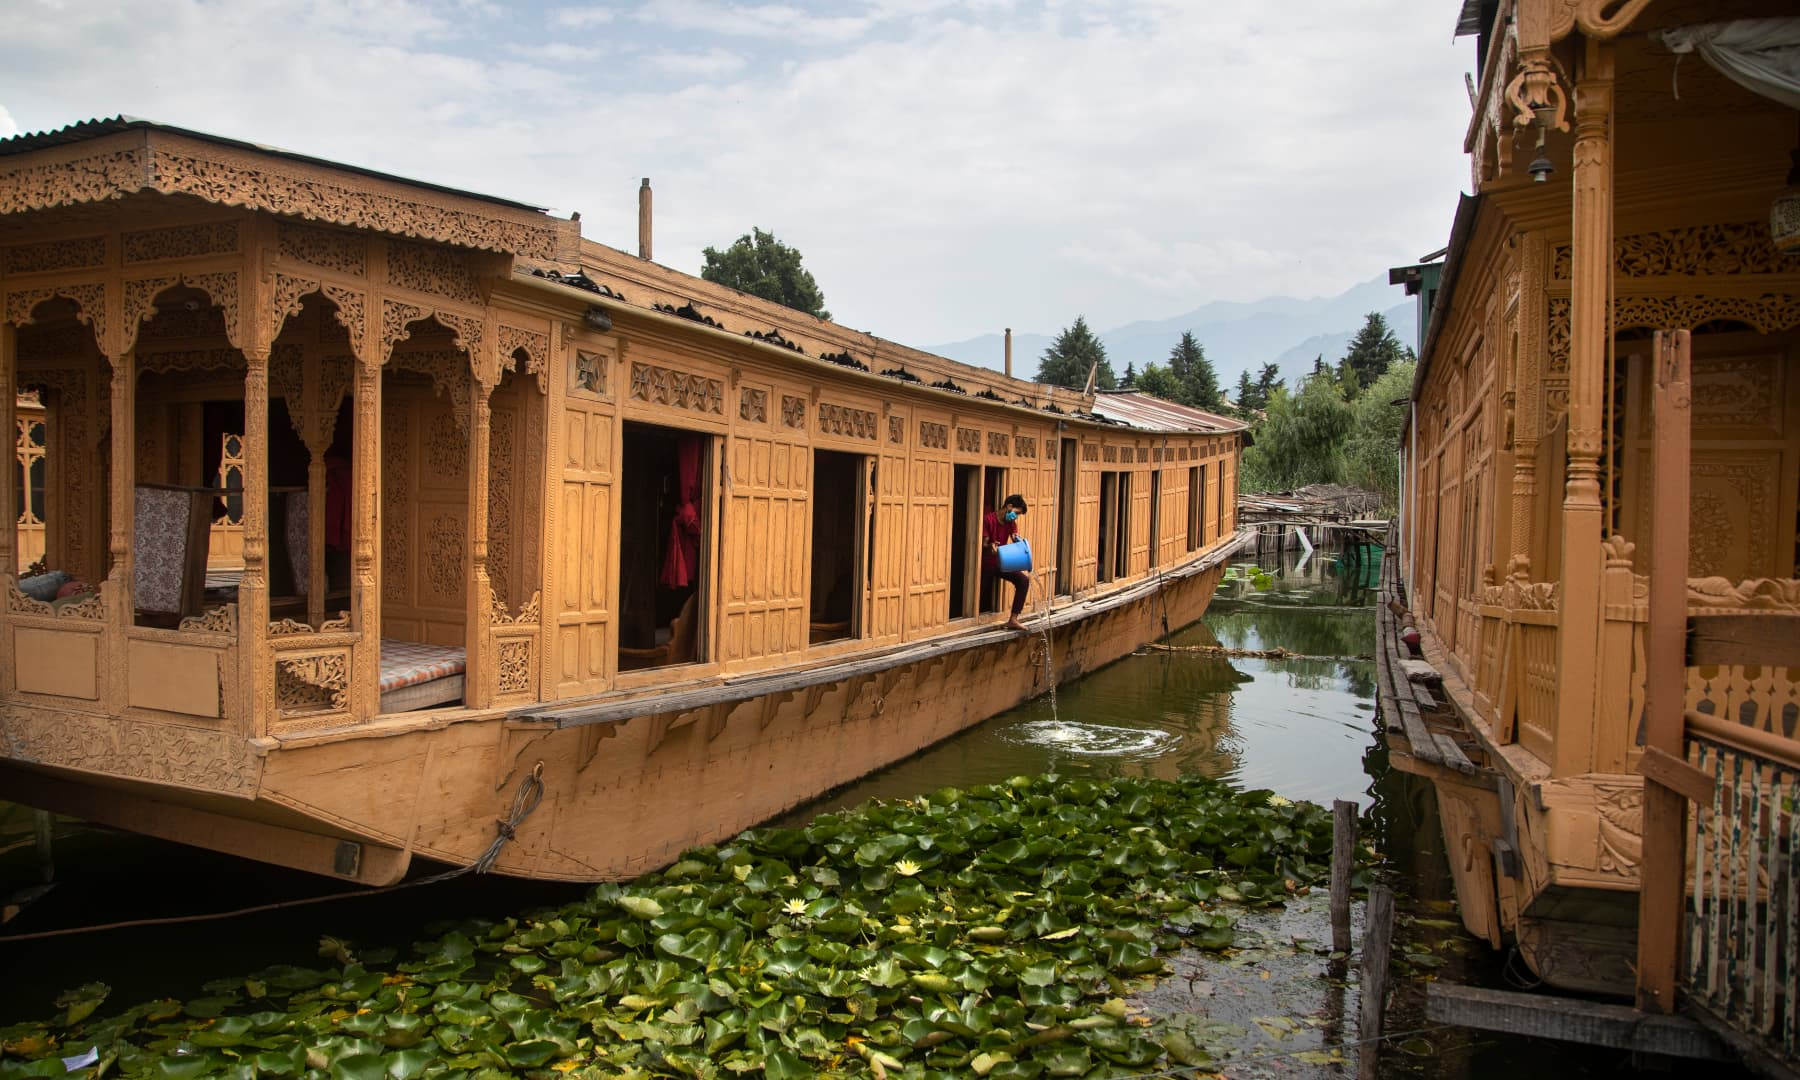 Kashmiri man Illiyas Ahmad cleans an unoccupied houseboat at Nigeen Lake during lockdown to stop the spread of the coronavirus in Srinagar, July 16. — AP